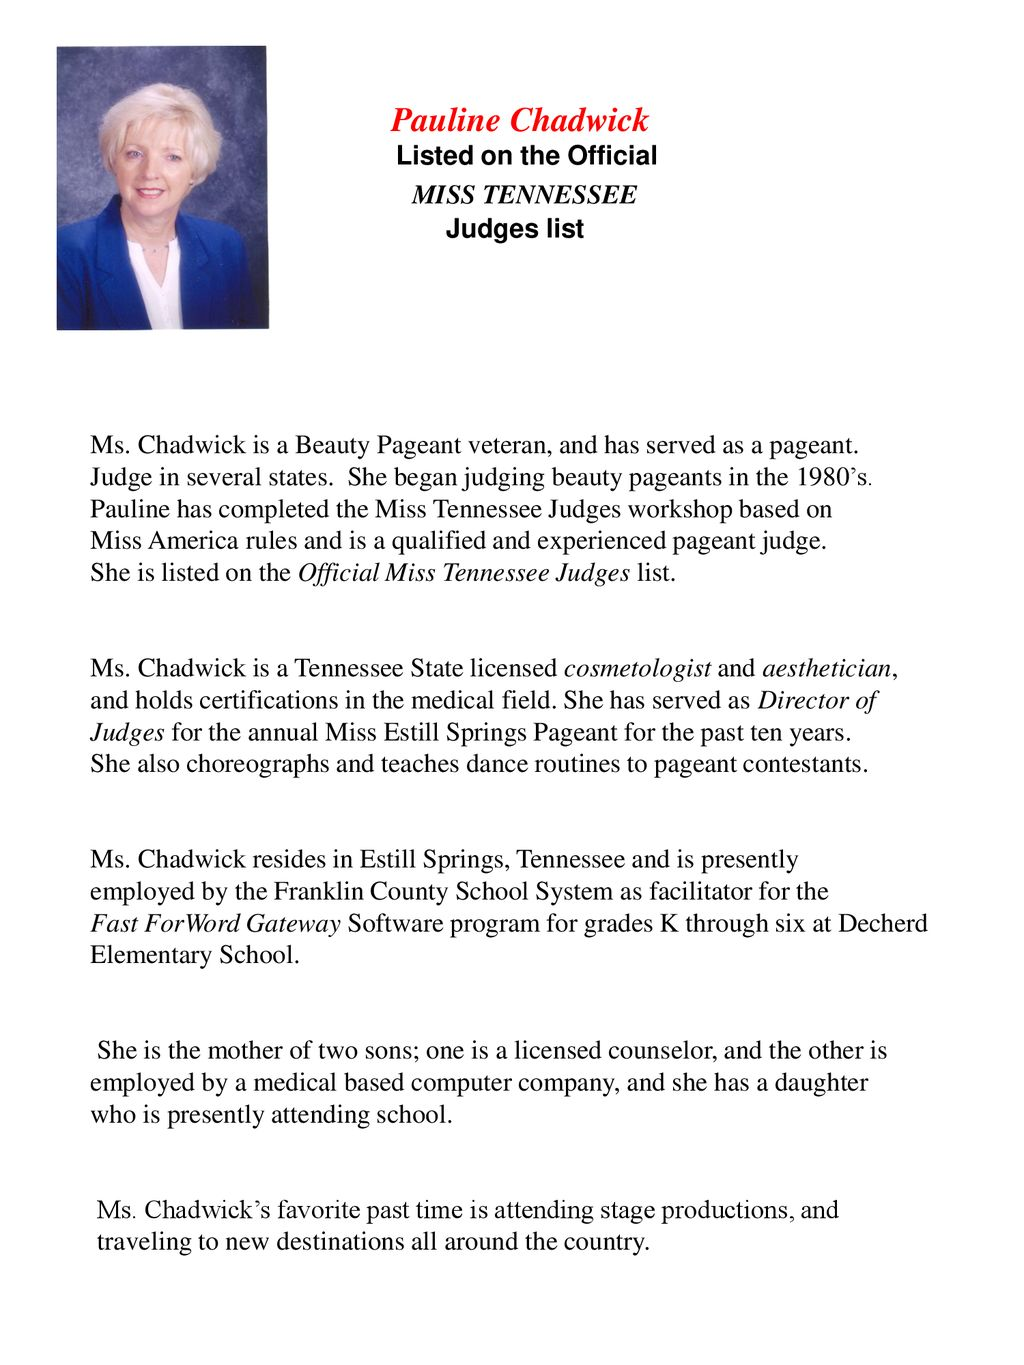 pauline chadwick miss tennessee listed on the official judges list